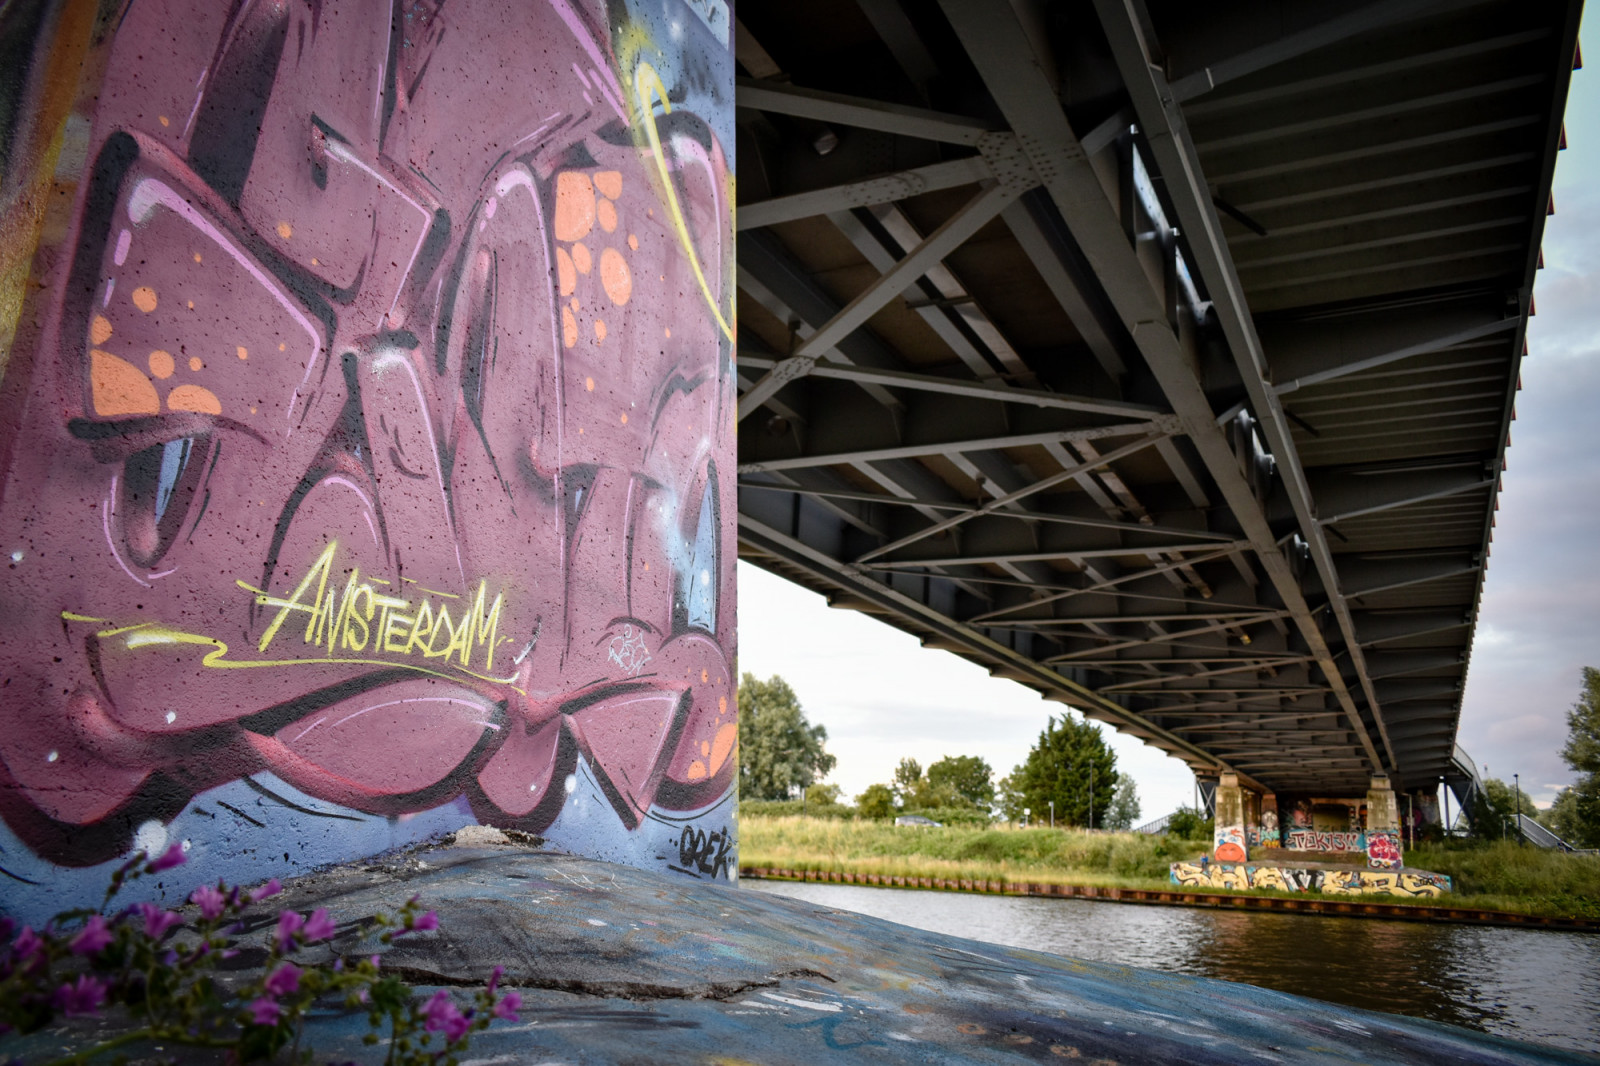 Graffiti under bridge in Amsterdam